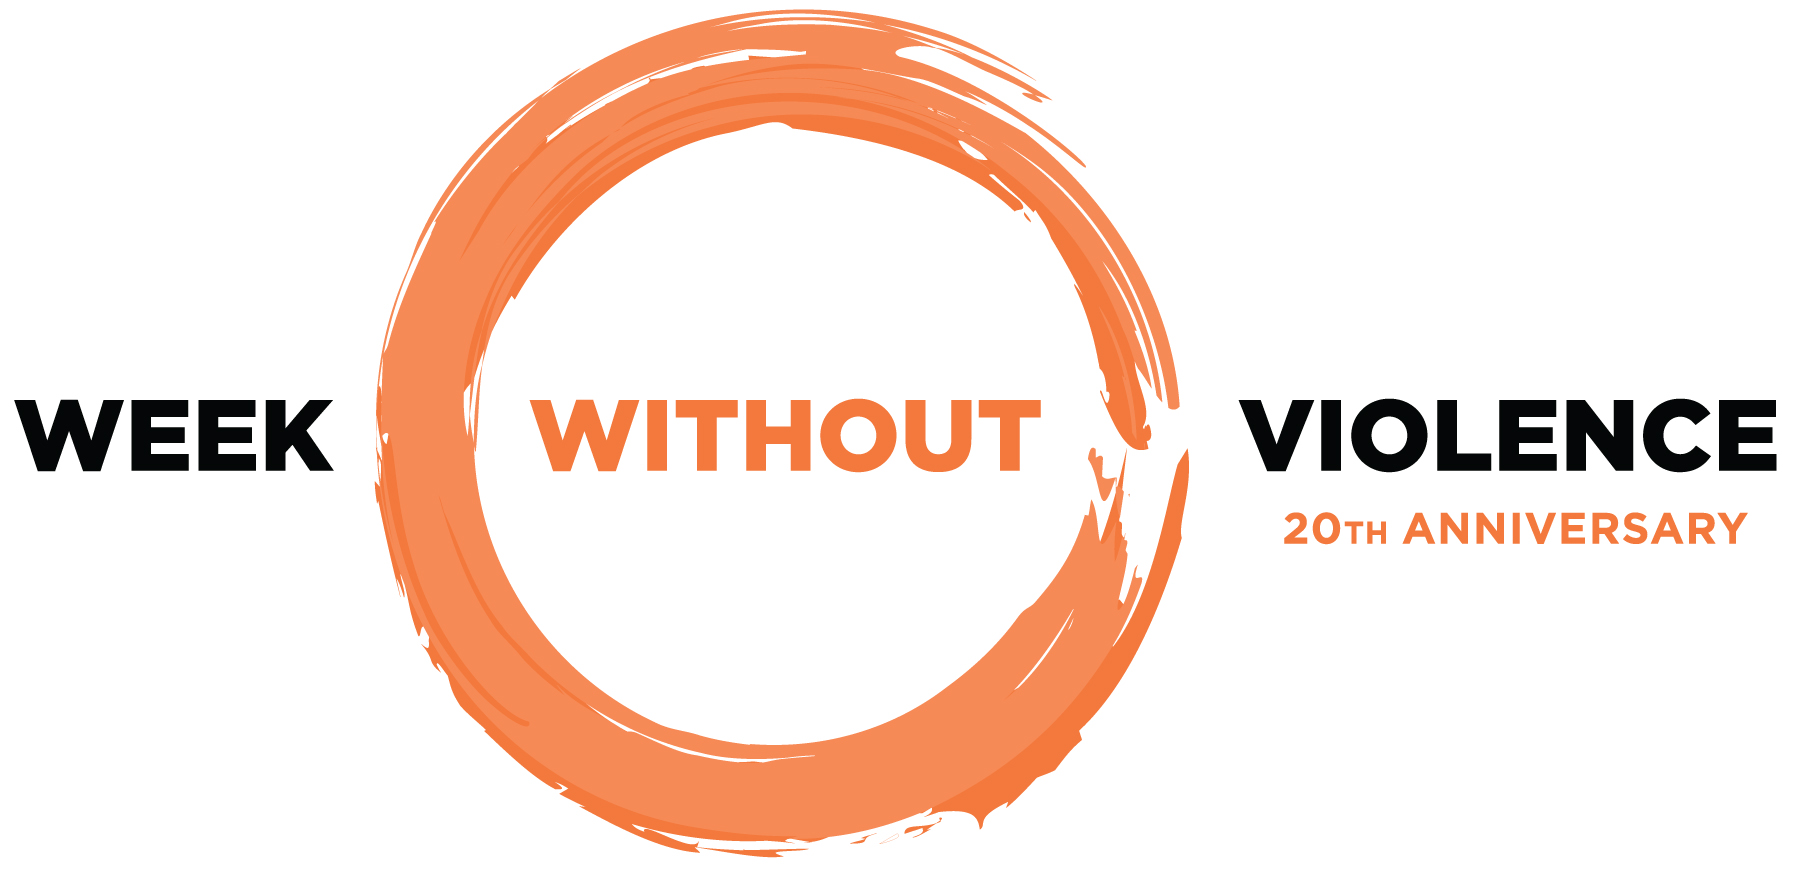 Why Domestic Violence Survivors Can't Just Leave - YWCA USA